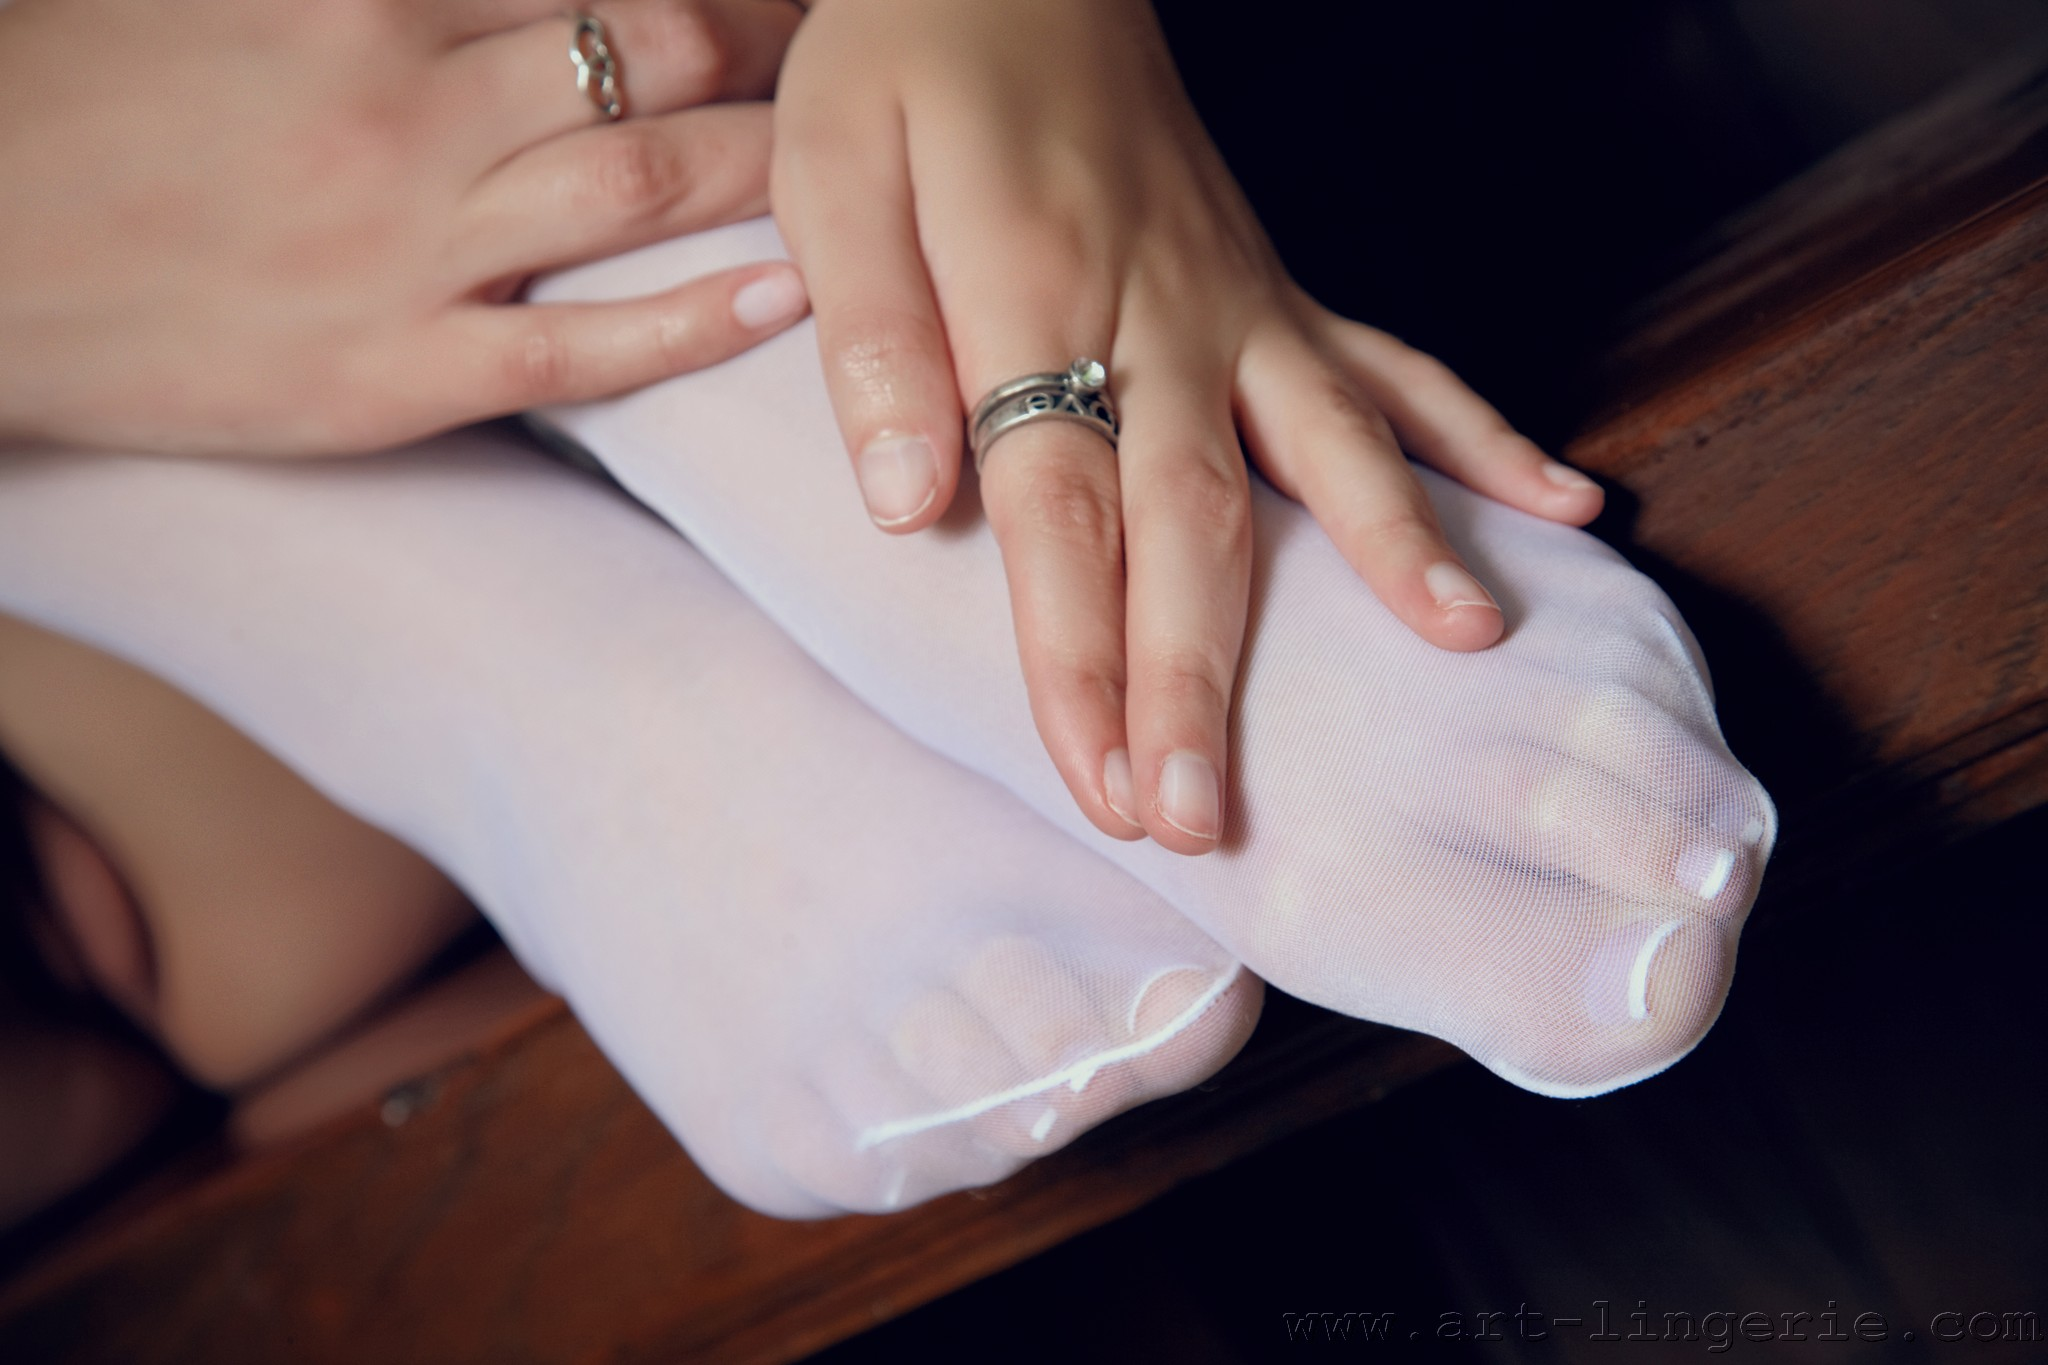 white stockings high heels slides related pics